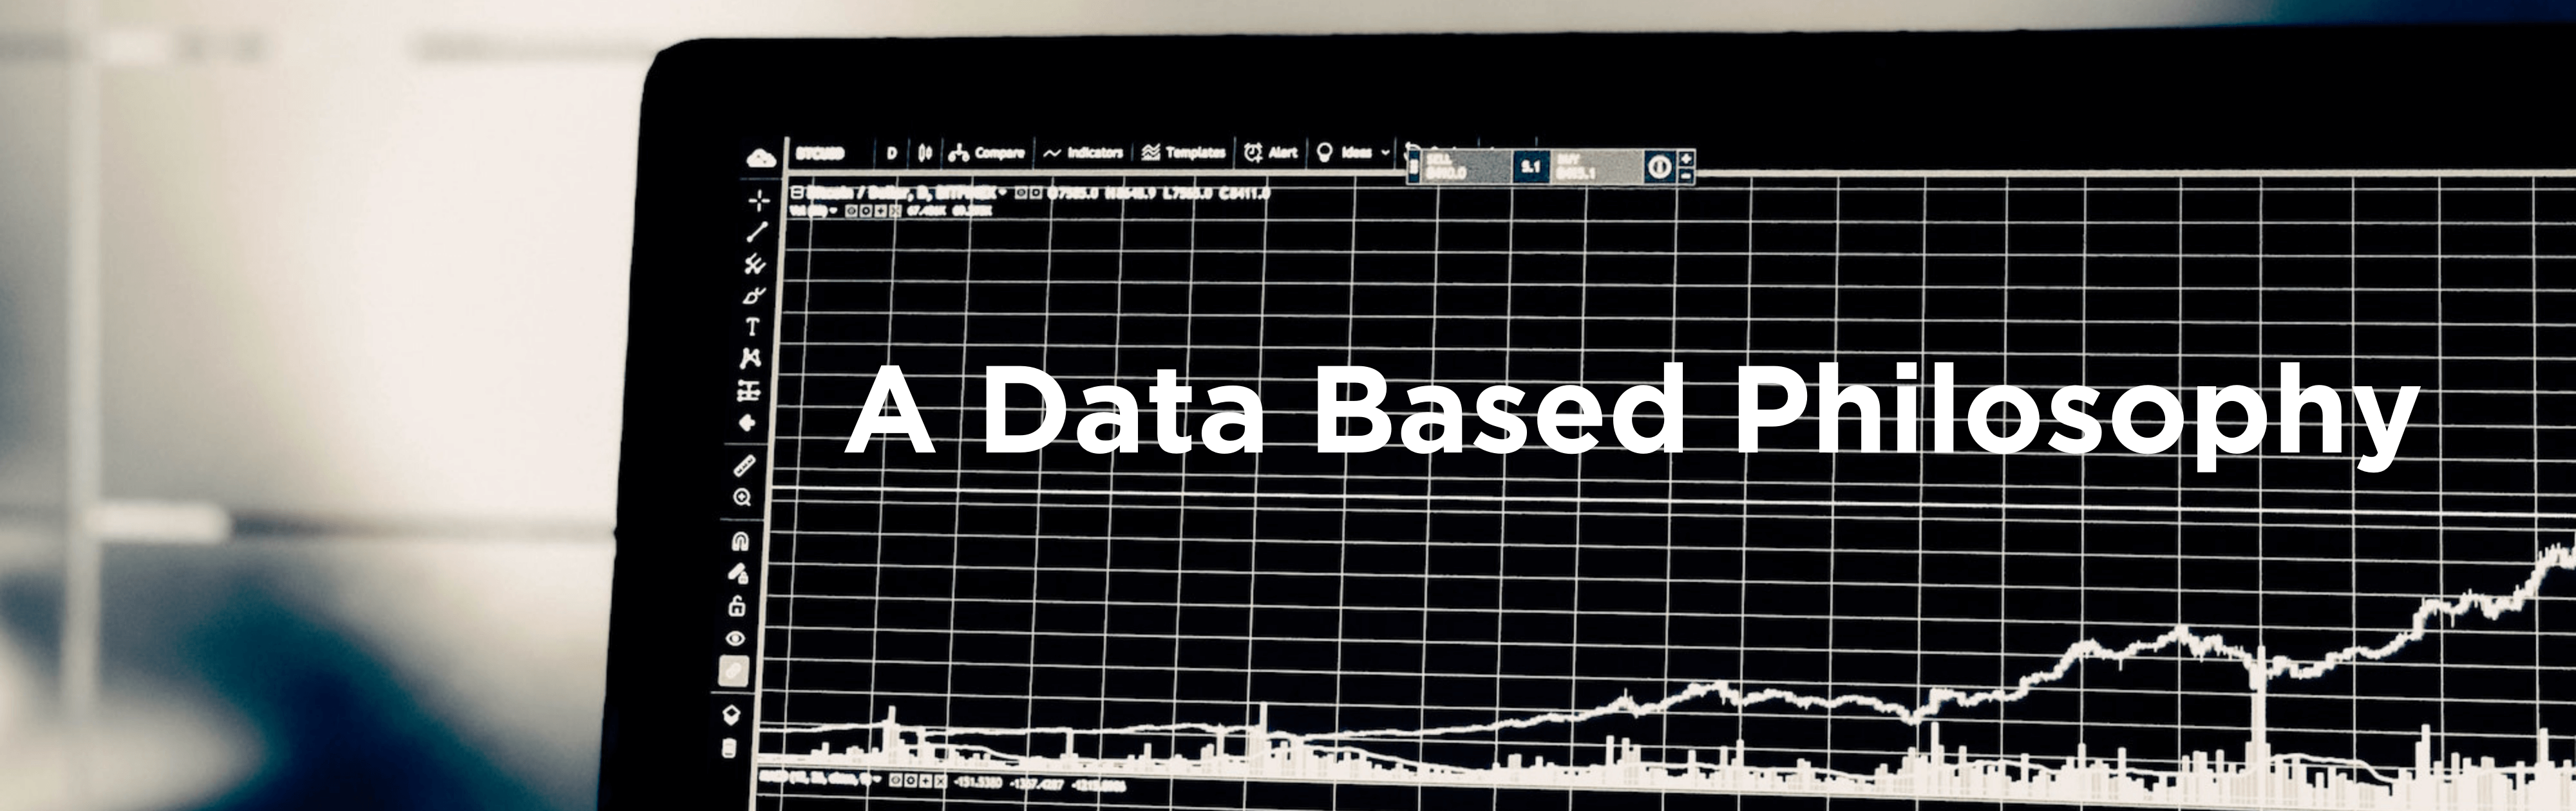 A Data Based Philosophy